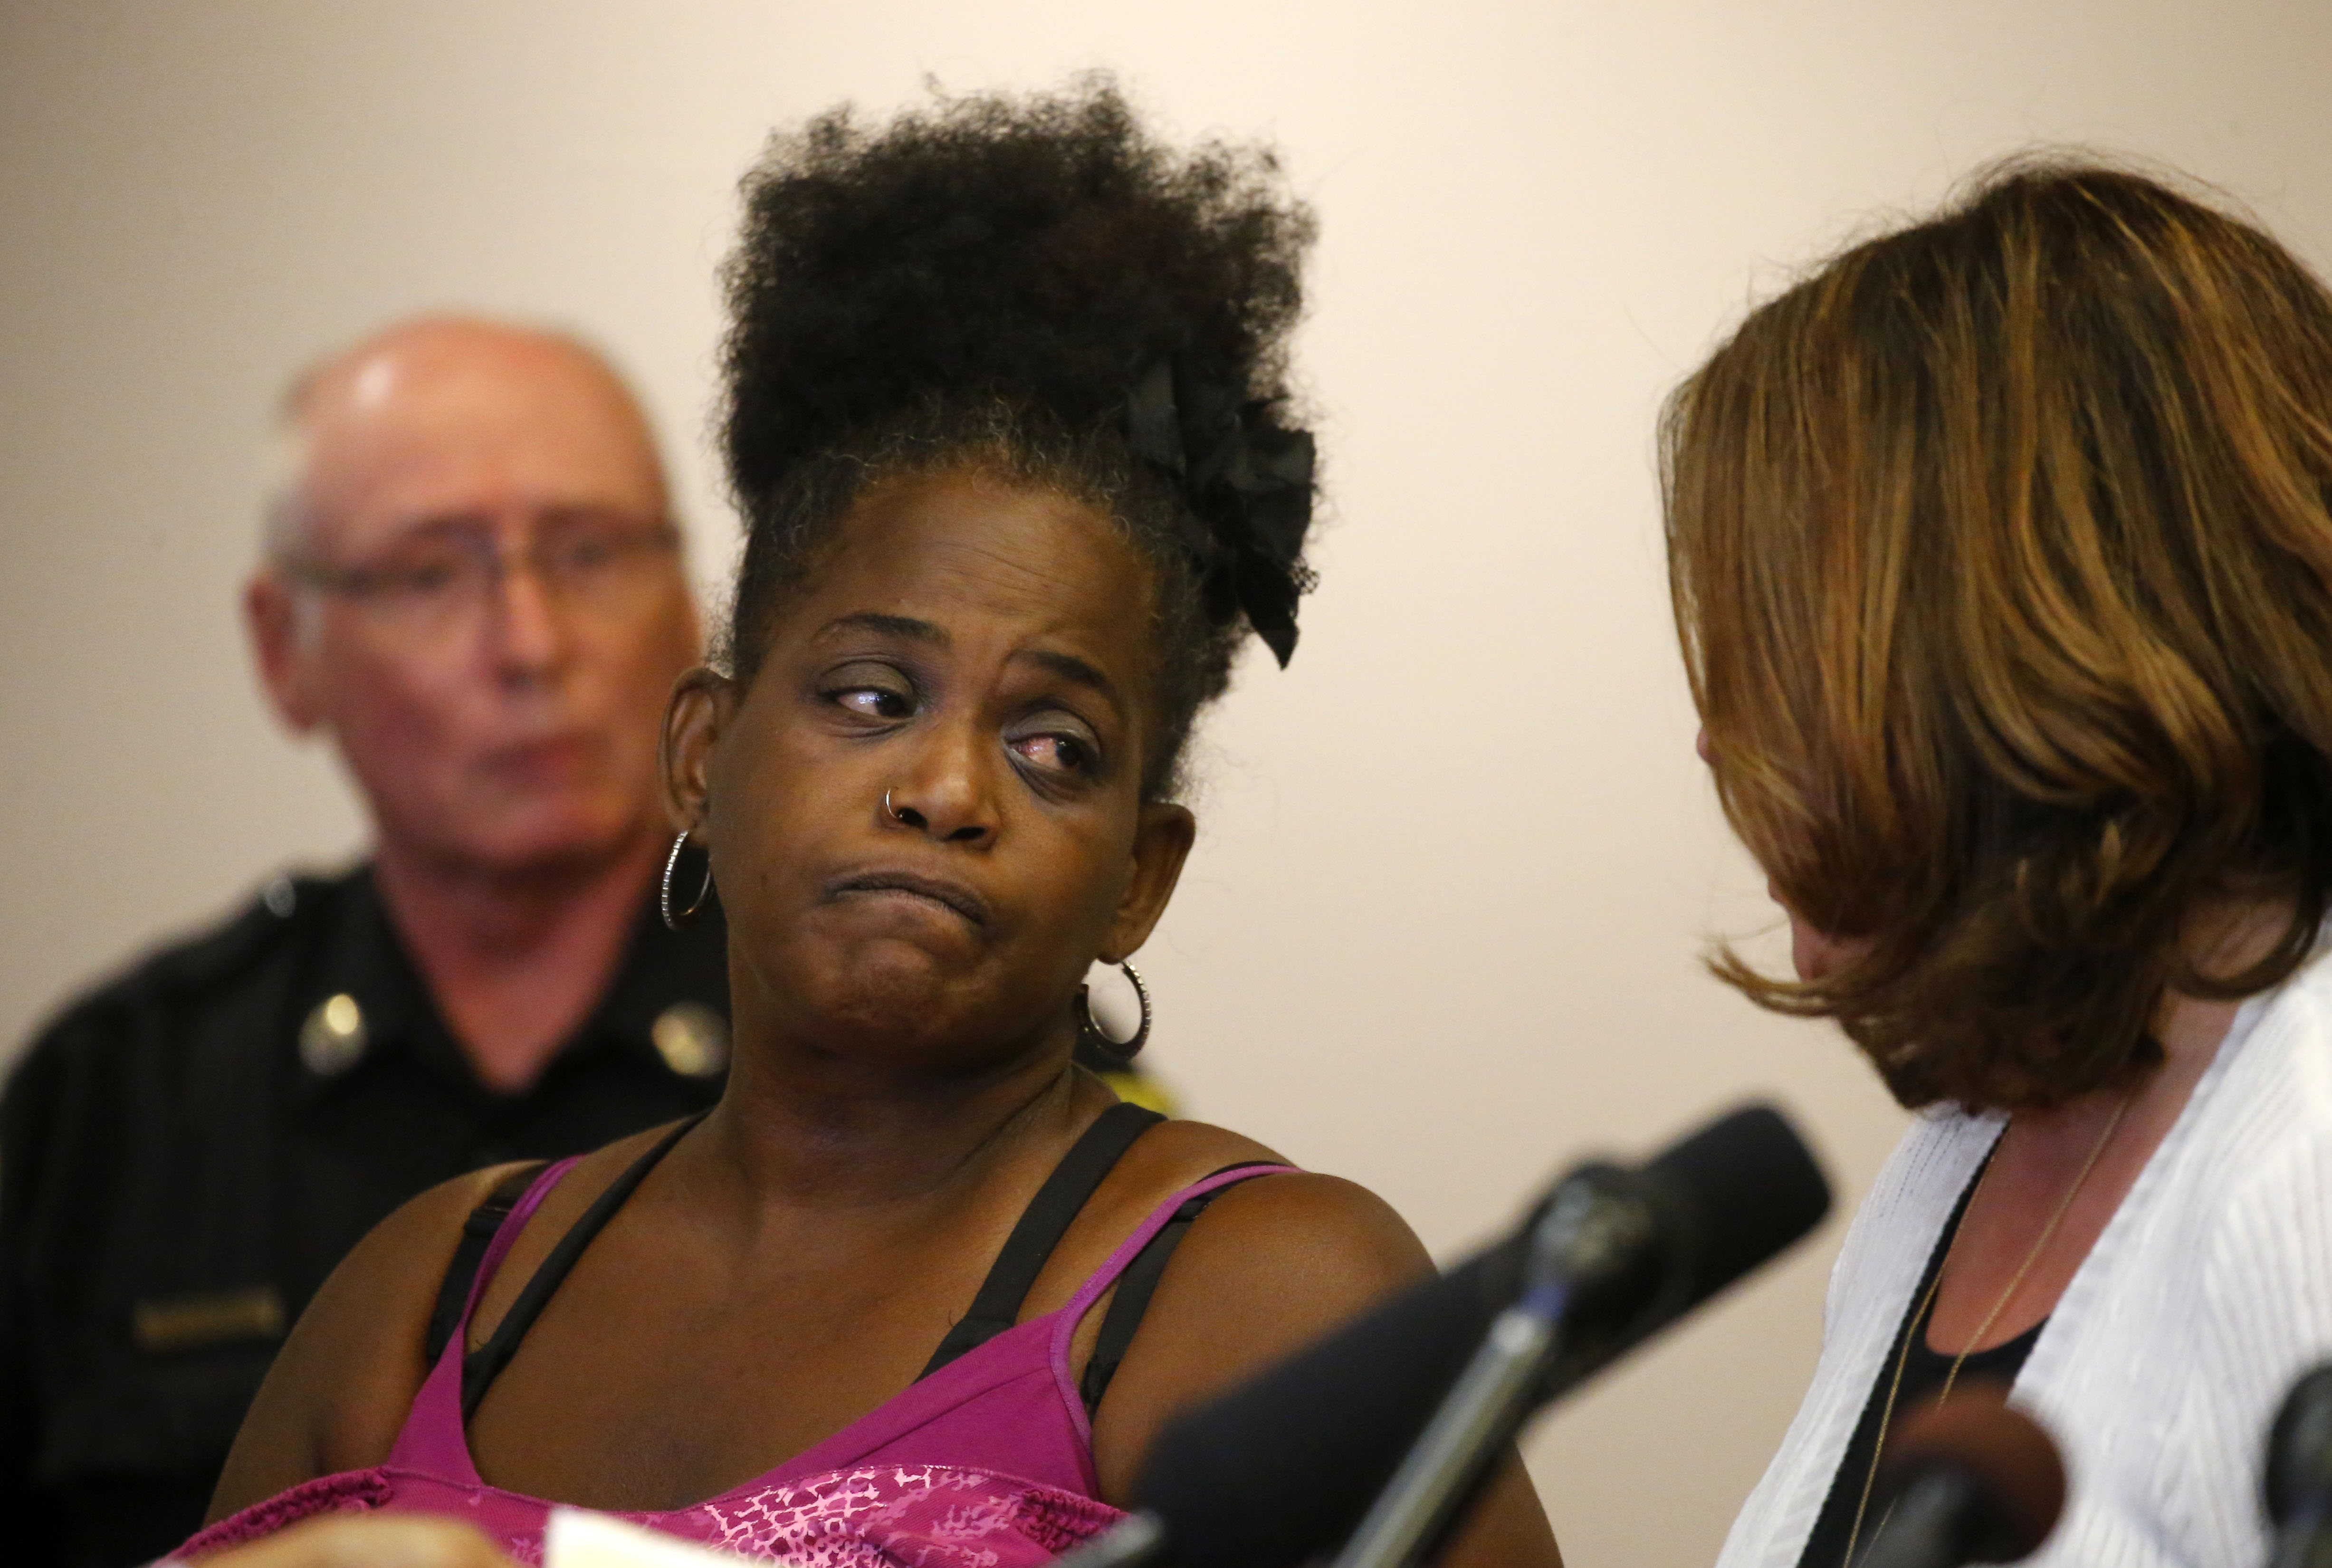 Saundra Adams, of Buffalo, is arraigned in front of Judge David W. Foley on Wednesday, Sept. 7, 2016, for the alleged 1983 murder of Edmund Schreiber in his home on Hastings Avenue in Buffalo. Schreiber, who was 92 at the time of his death, was a decorated veteran of World War I. (Mark Mulville/Buffalo News)